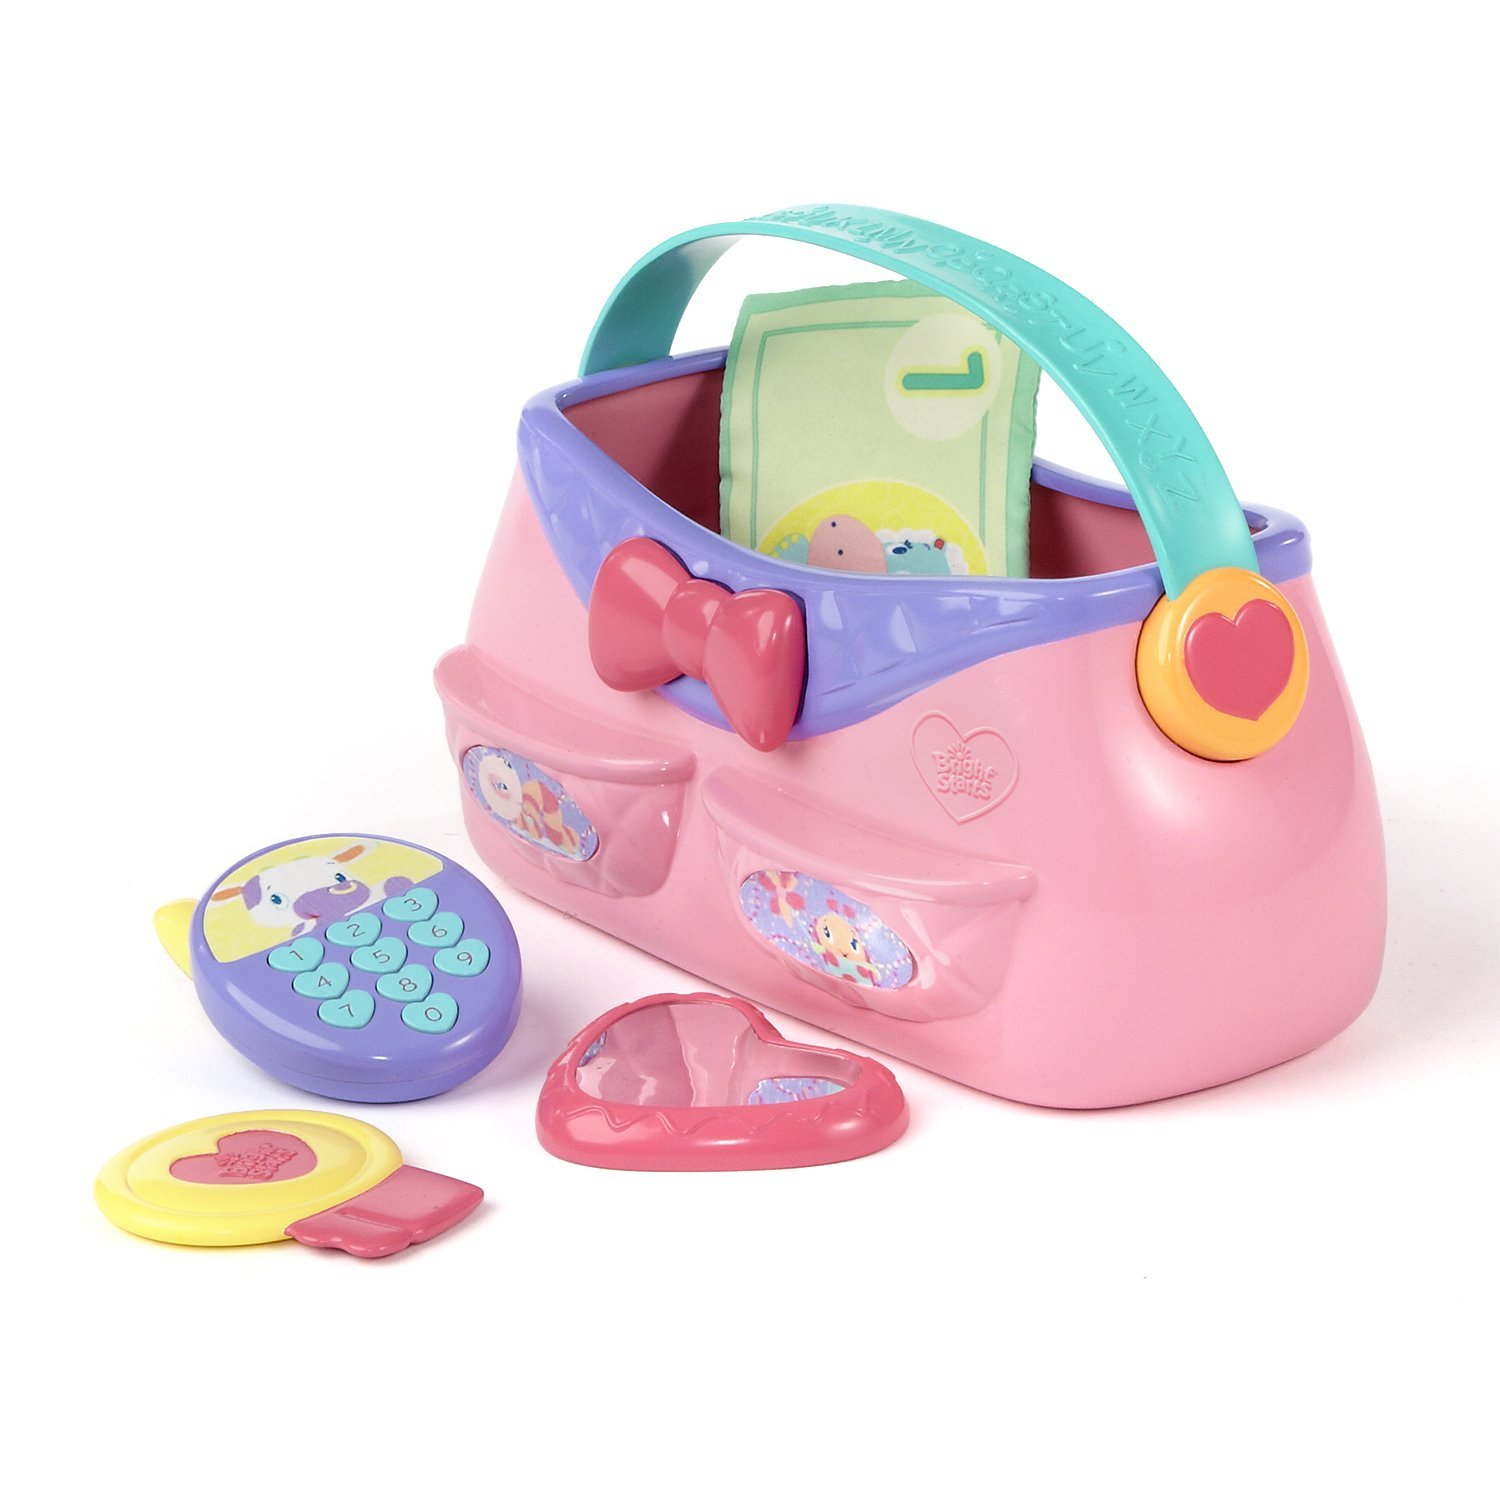 Bella s First Purse Bright Starts Toy Review It s Gravy Baby